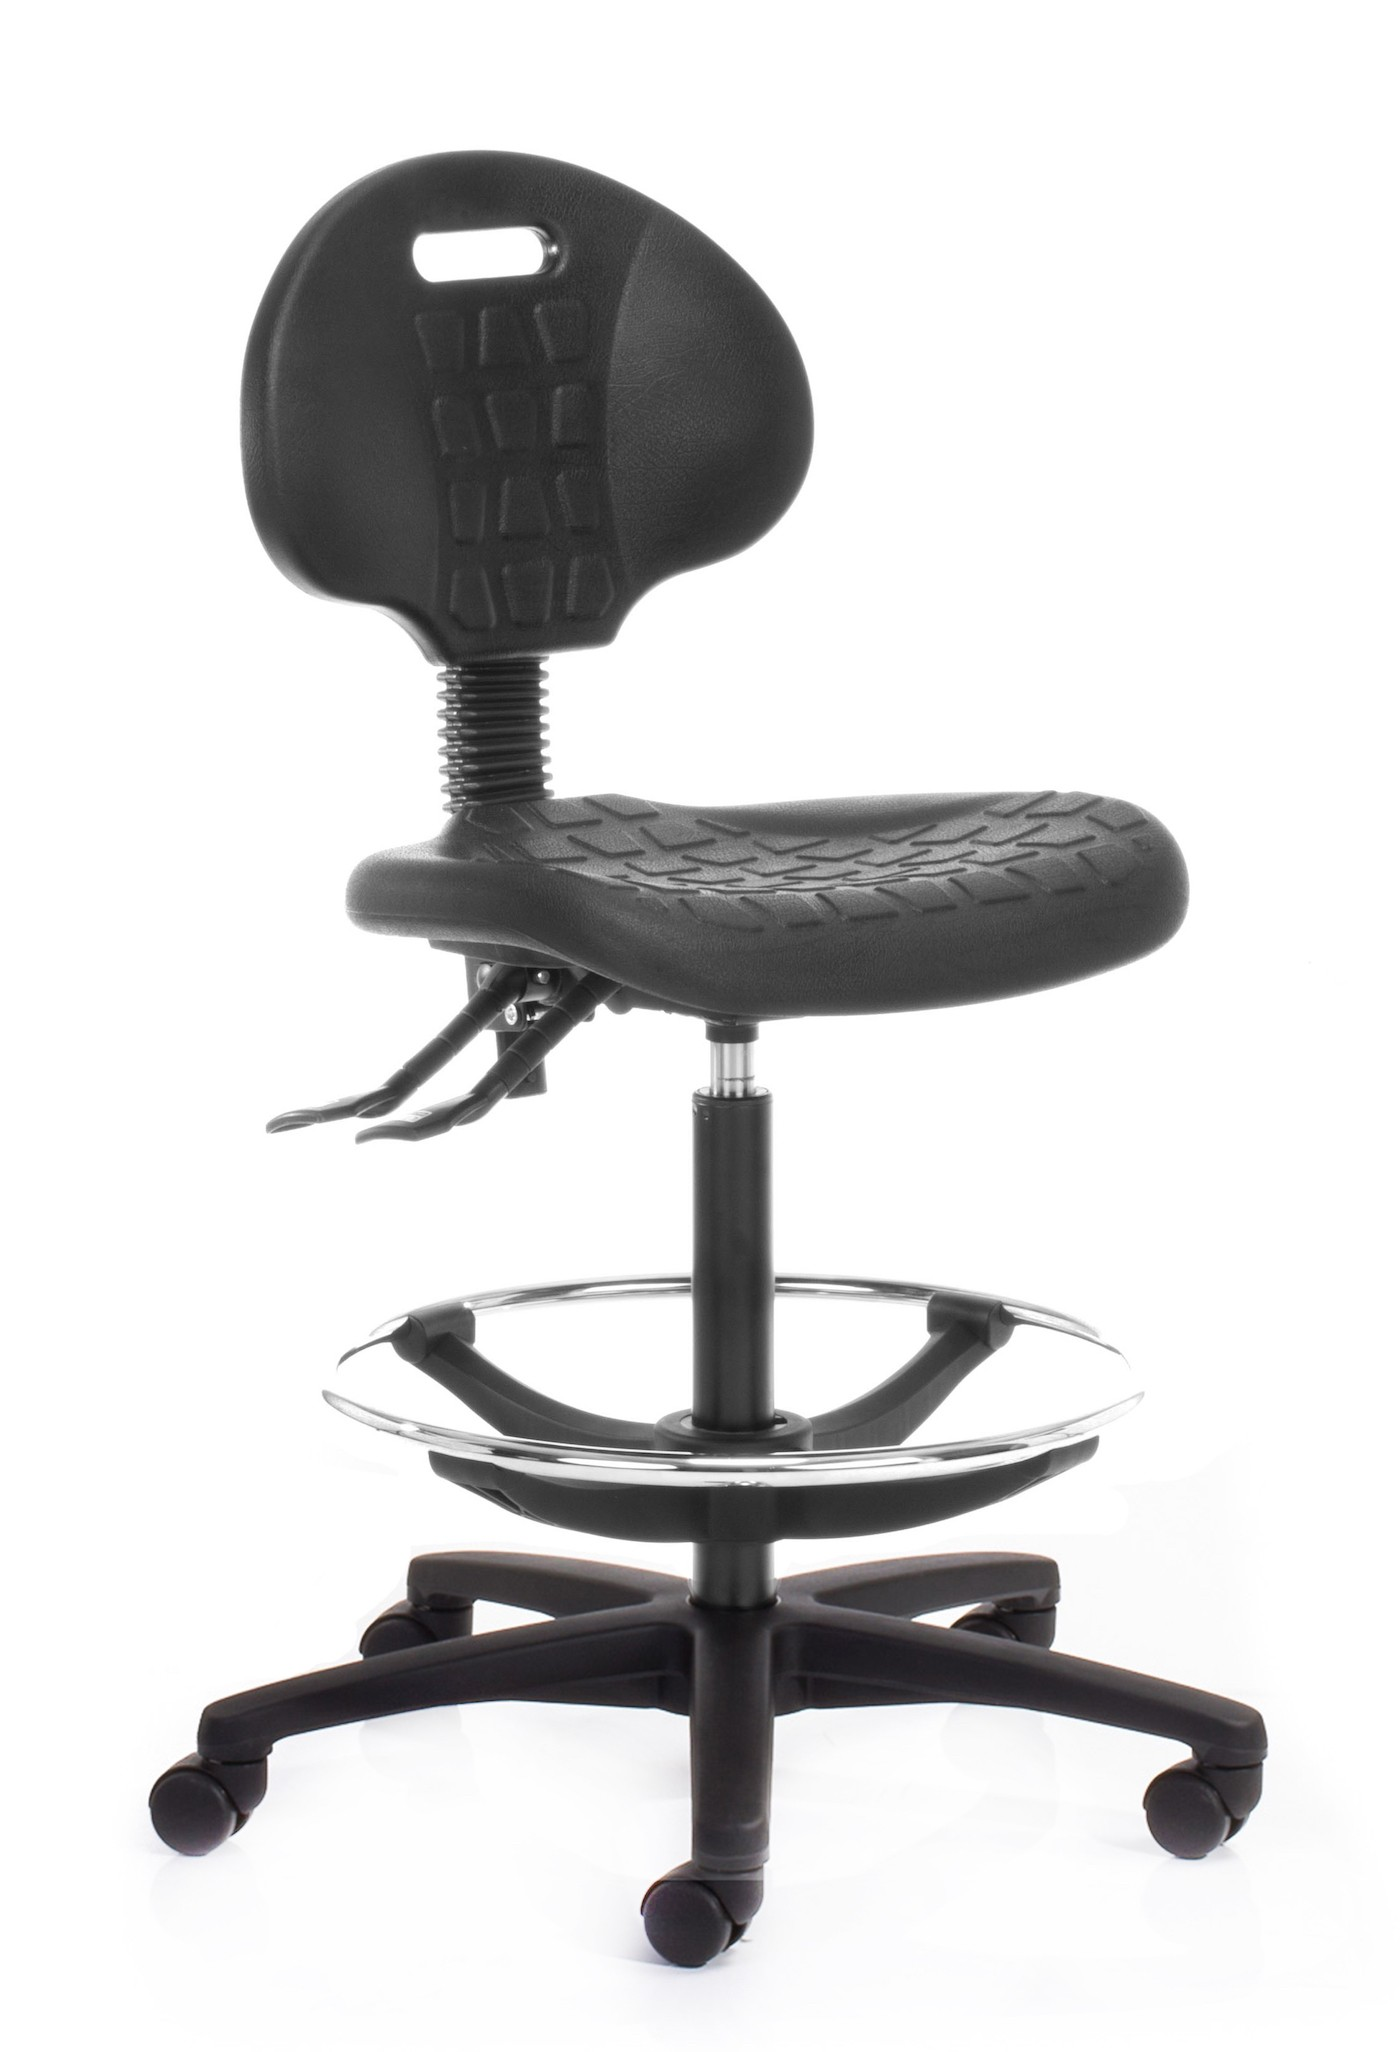 Lab Tech Chair Afrdi Level 6 Office Furniture Desk Chairs